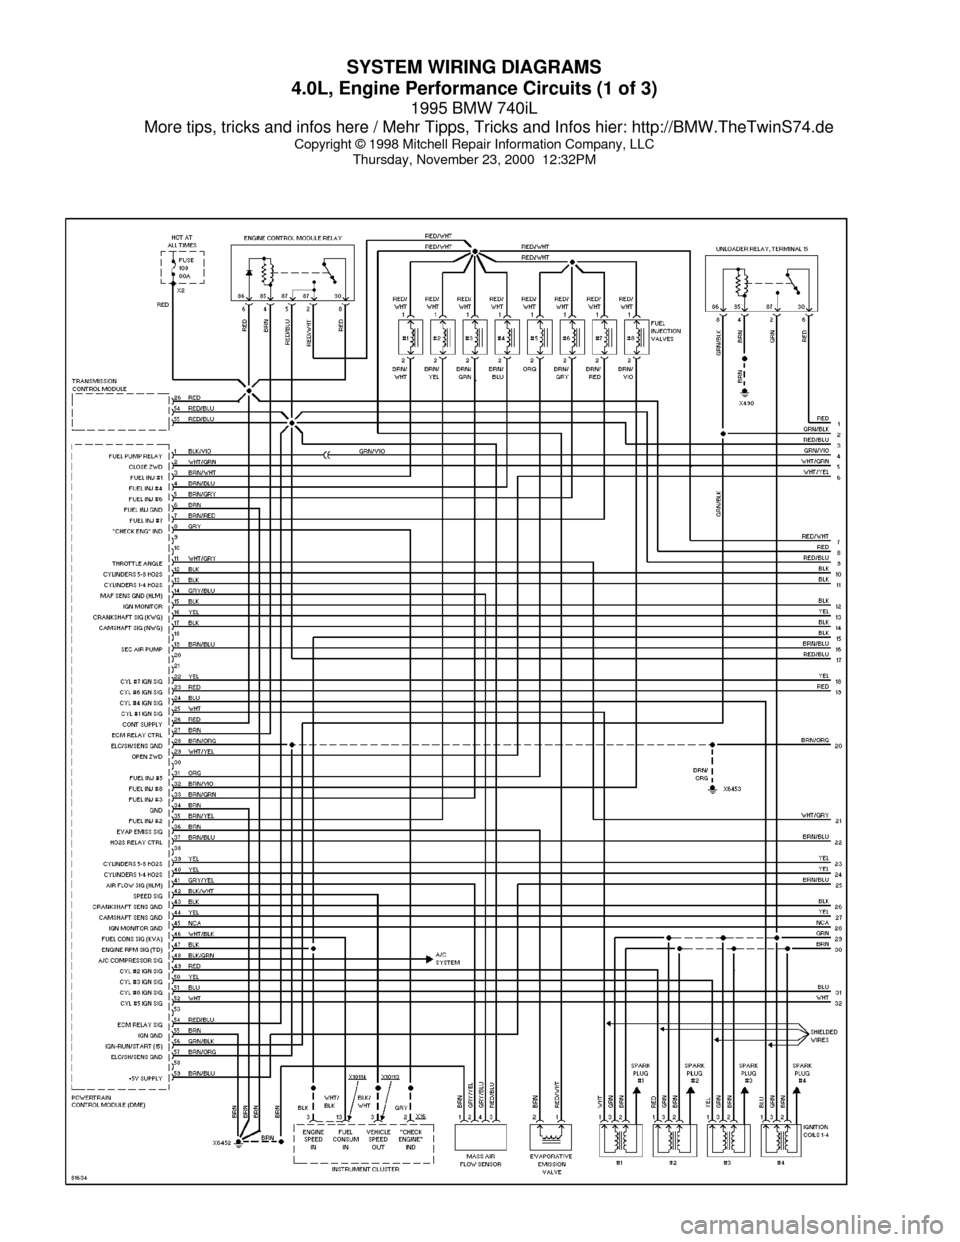 Bmw E38 Audio Wiring Archive Of Automotive Diagram Schematics Rh Thyl Co Uk